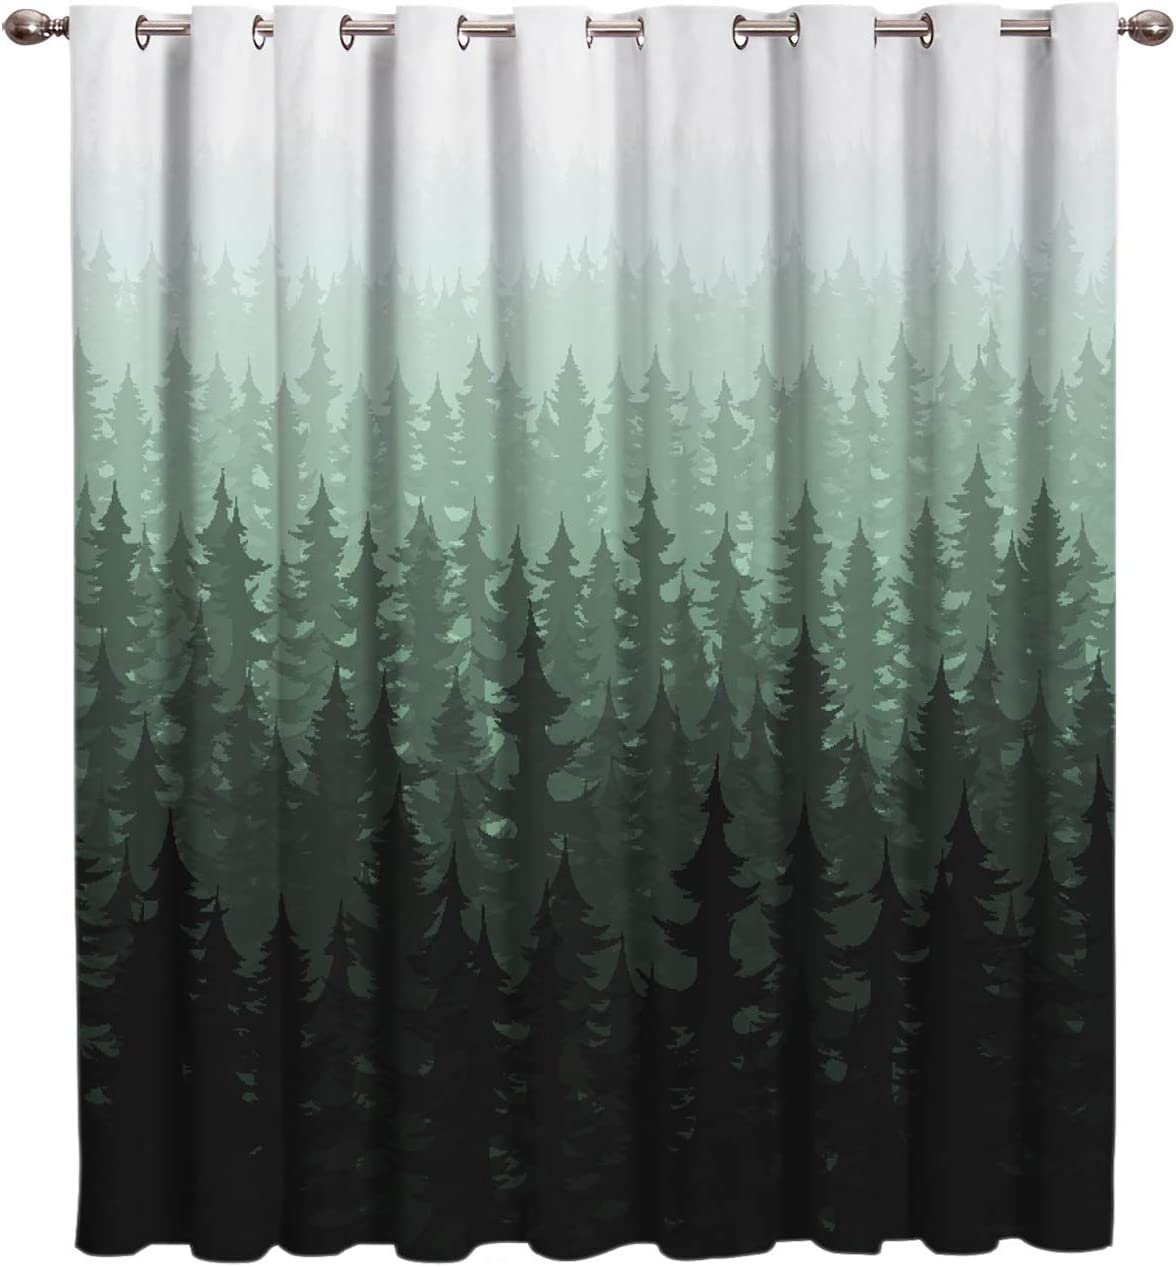 Nature Forest Landscape Decor Window Curtain Drapes Treatment Kitchen Blackout Curtains, Curtains and Drapes for Kitchen Cafe Office, Watercolor Style Fir Pine Trees Fogged Scene 52''W x 63''L